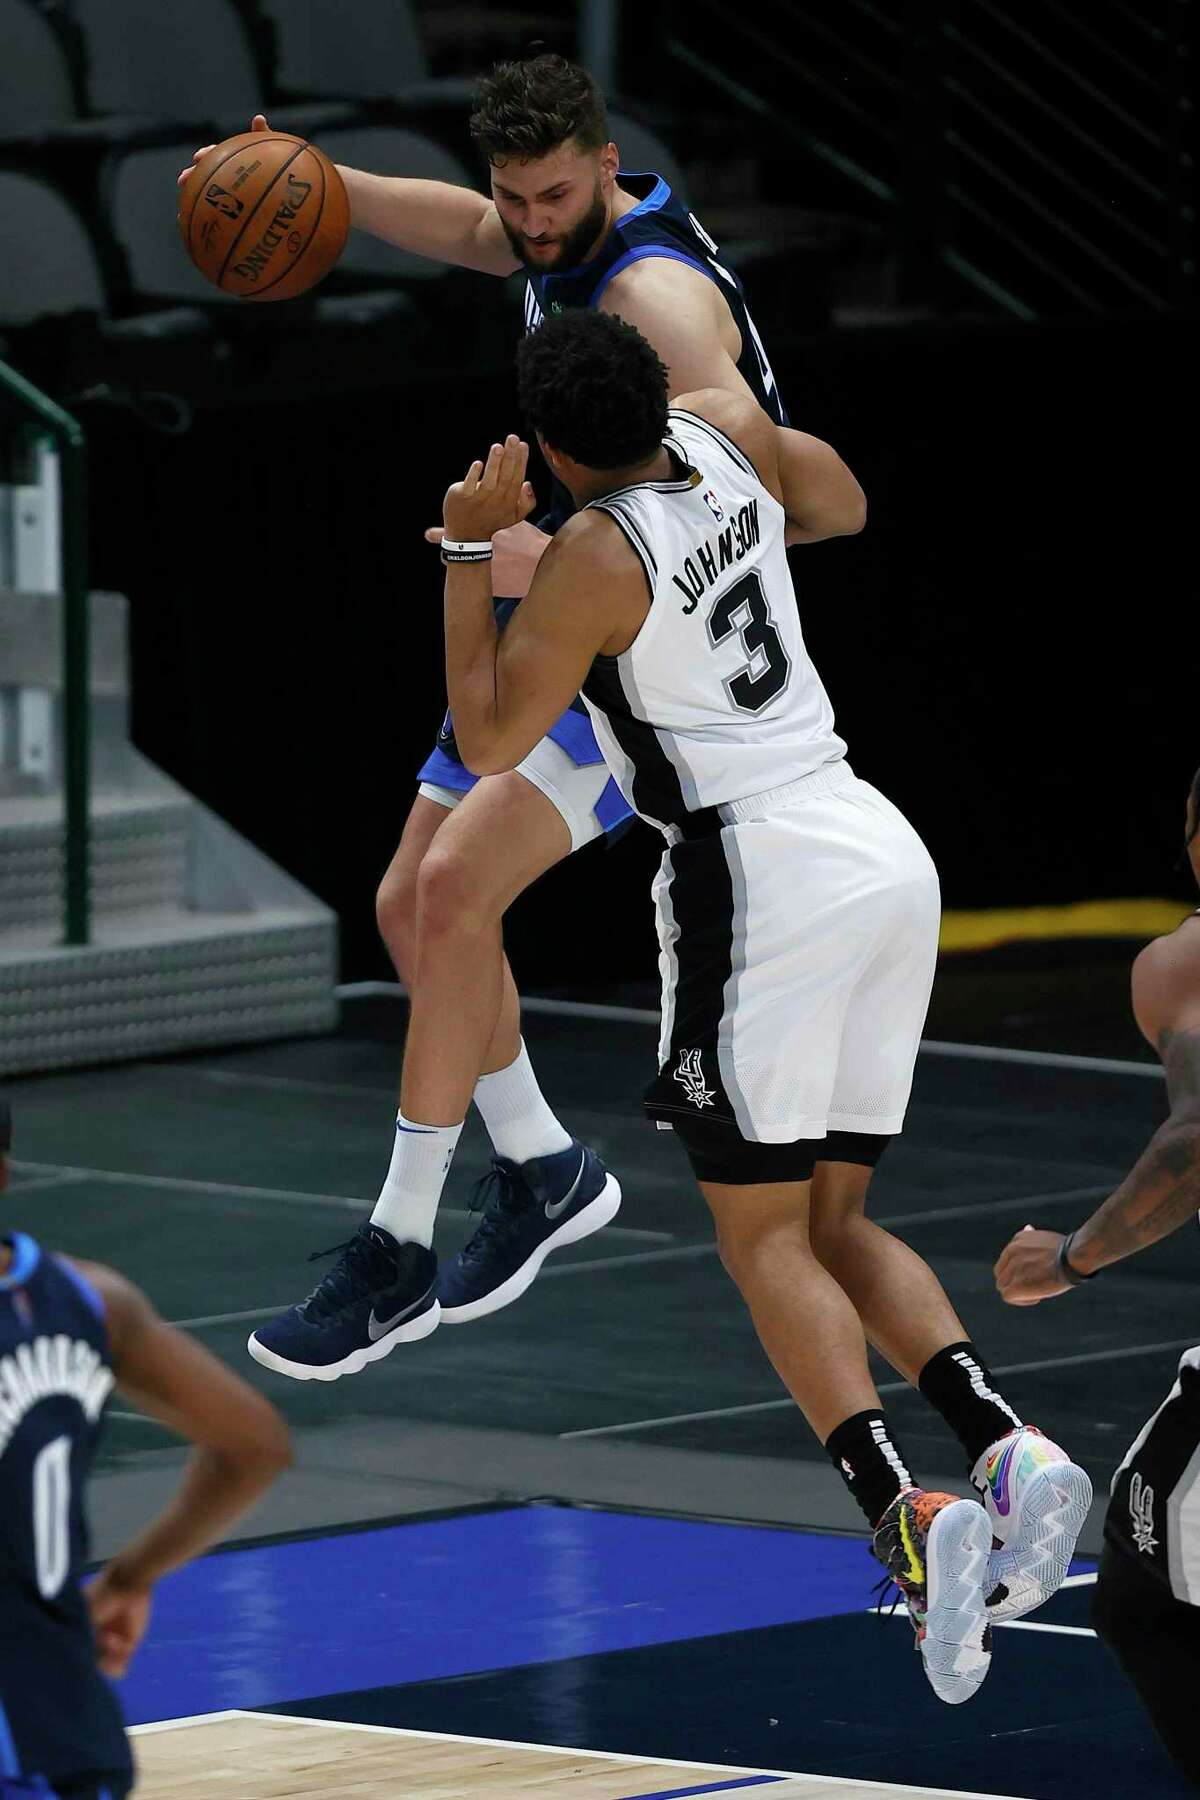 DALLAS, TEXAS - MARCH 10: Maxi Kleber #42 of the Dallas Mavericks scrambles for a loose ball against Keldon Johnson #3 of the San Antonio Spurs in the fourth quarter at American Airlines Center on March 10, 2021 in Dallas, Texas. NOTE TO USER: User expressly acknowledges and agrees that, by downloading and or using this photograph, User is consenting to the terms and conditions of the Getty Images License Agreement. (Photo by Tom Pennington/Getty Images)